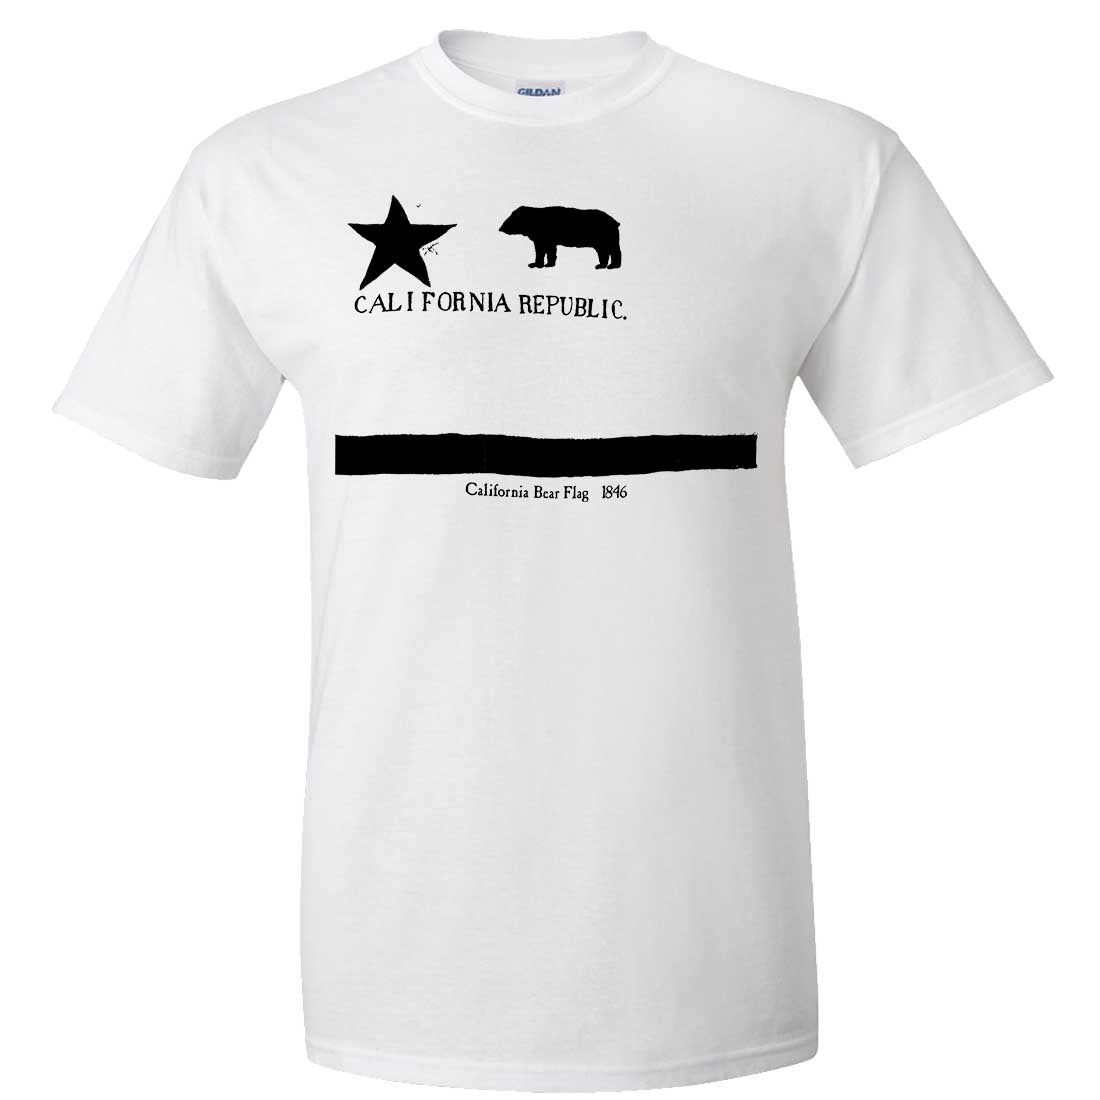 Old California Bear Flag 1846 Black Print Asst Colors T-shirt/tee